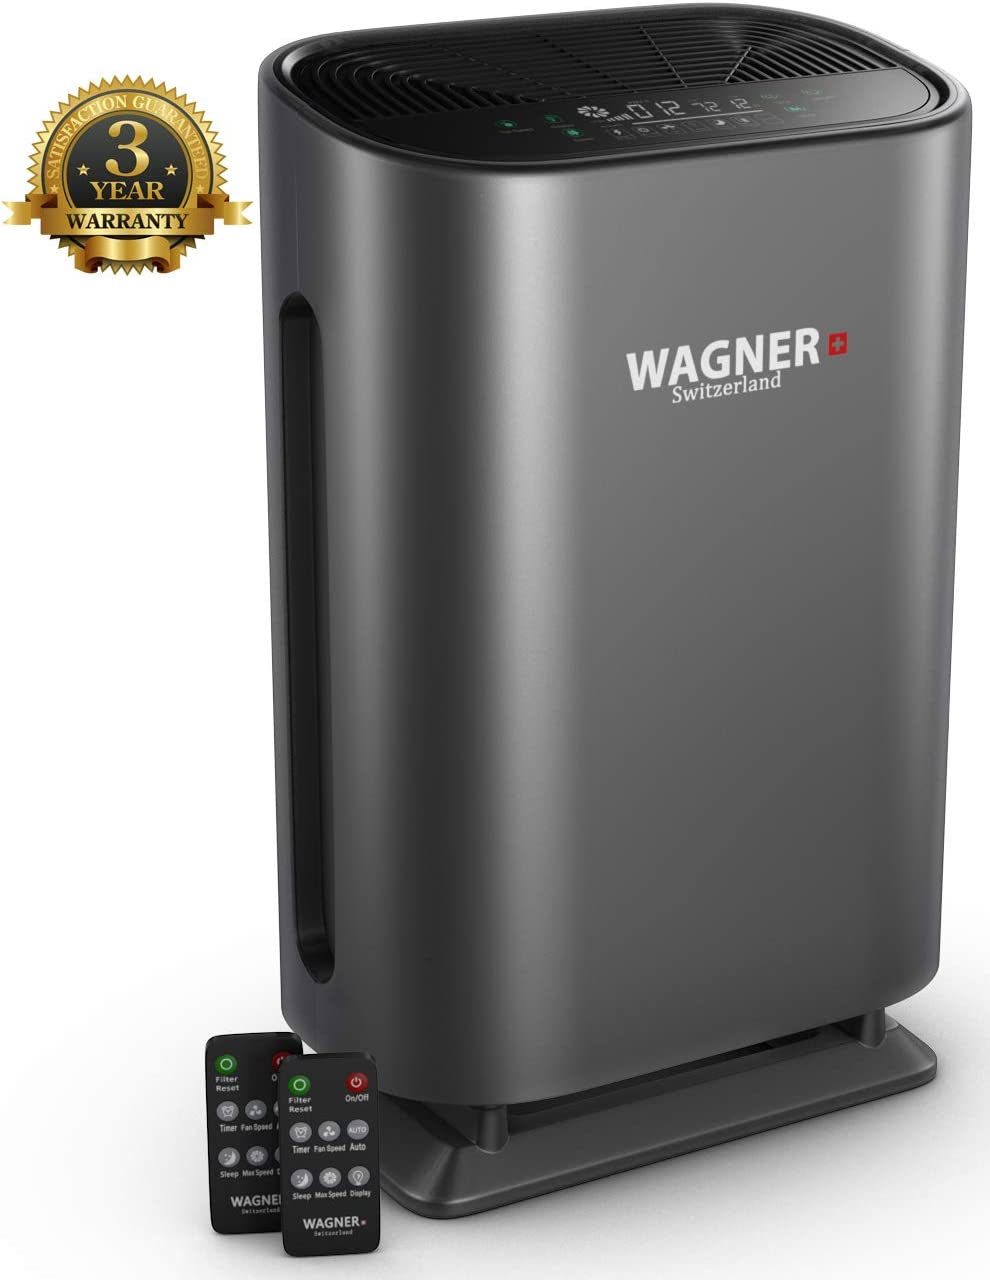 WAGNER Switzerland Air Purifier WA888 HEPA-13 Medical Grade Filter